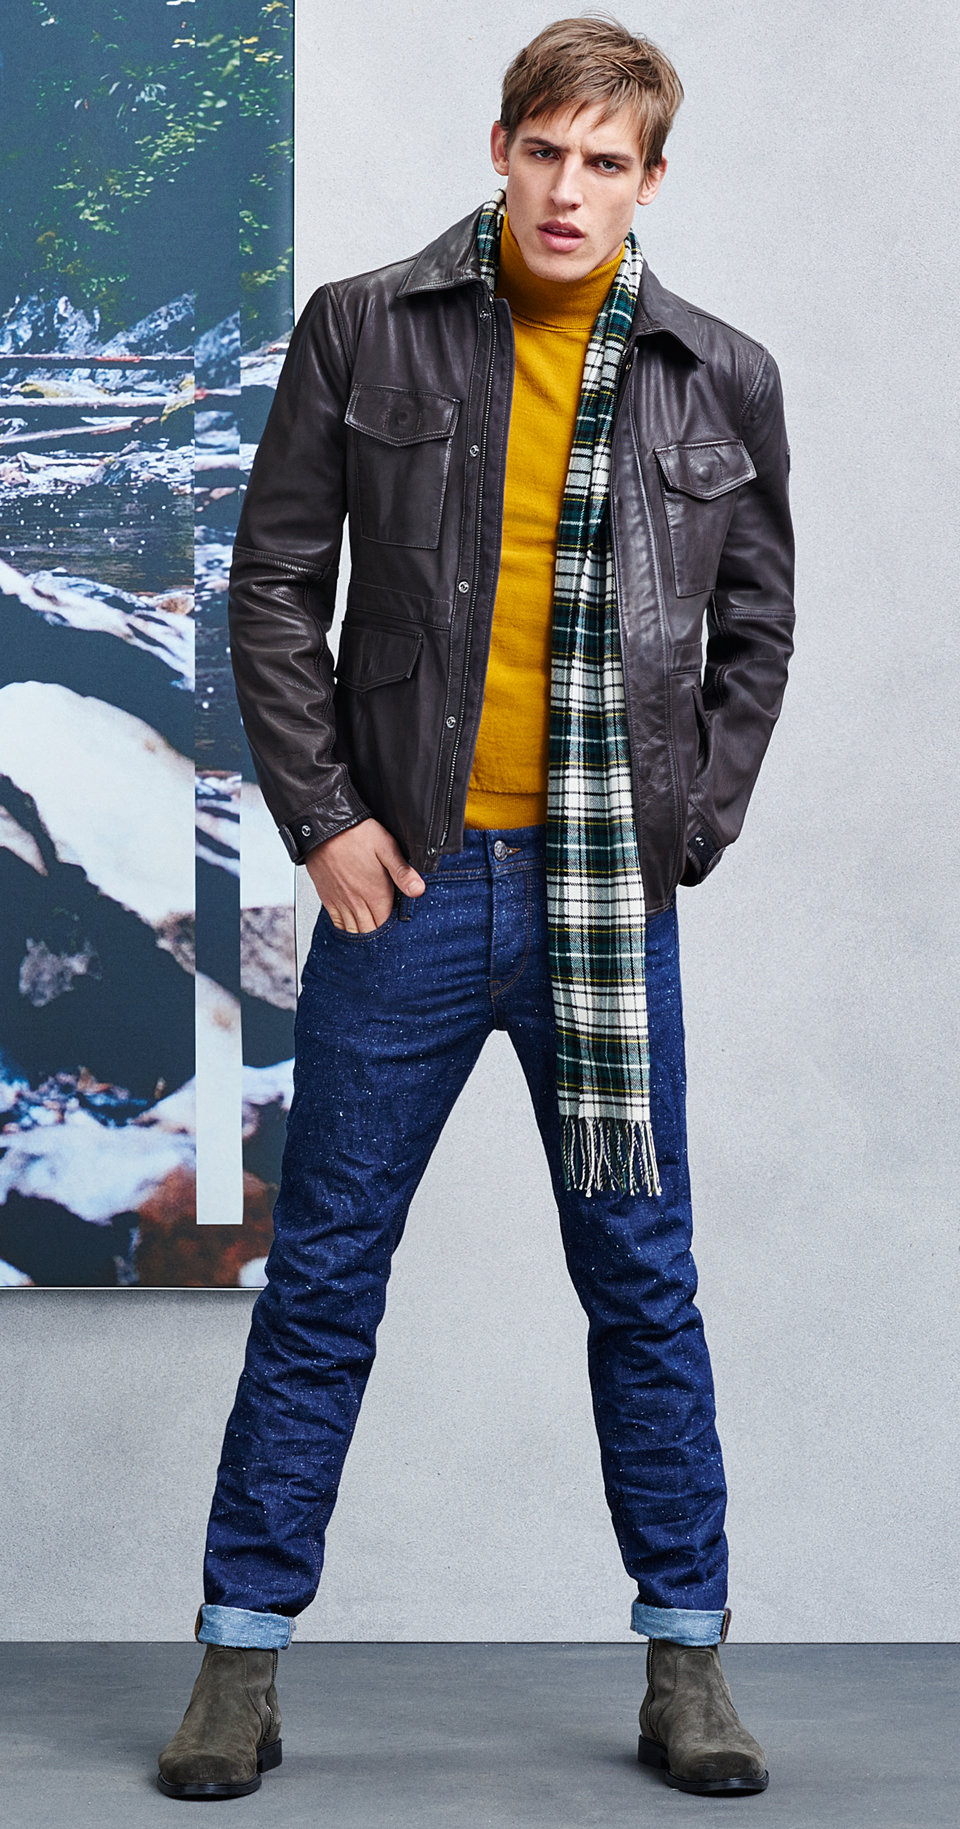 Darkbrown jacket, jeans, scarf and green shoes by BOSS Orange